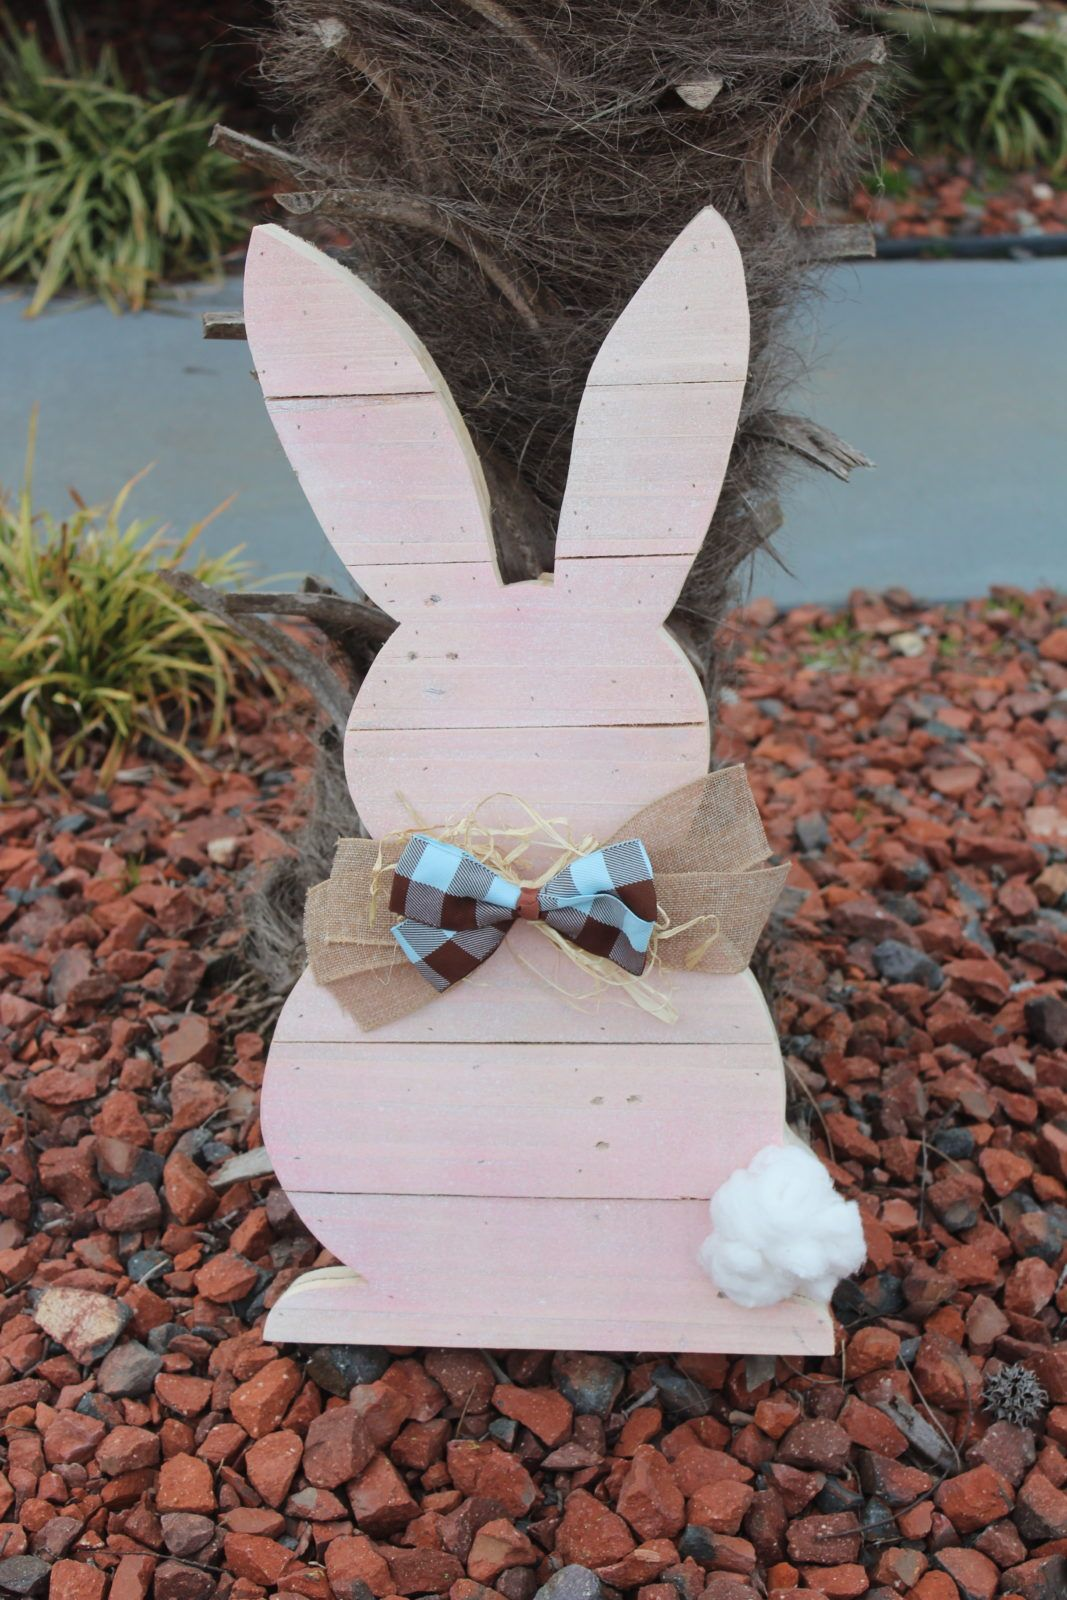 Easter Decorations Wood Bunny Outdoor Easter Bunny Easter Decor Porch Decor Easter Wooden Bunny Easter Decor Easter Bunny Pappys Traditions Wooden Easter Decorations Diy Outdoor Decor Diy Easter Decorations